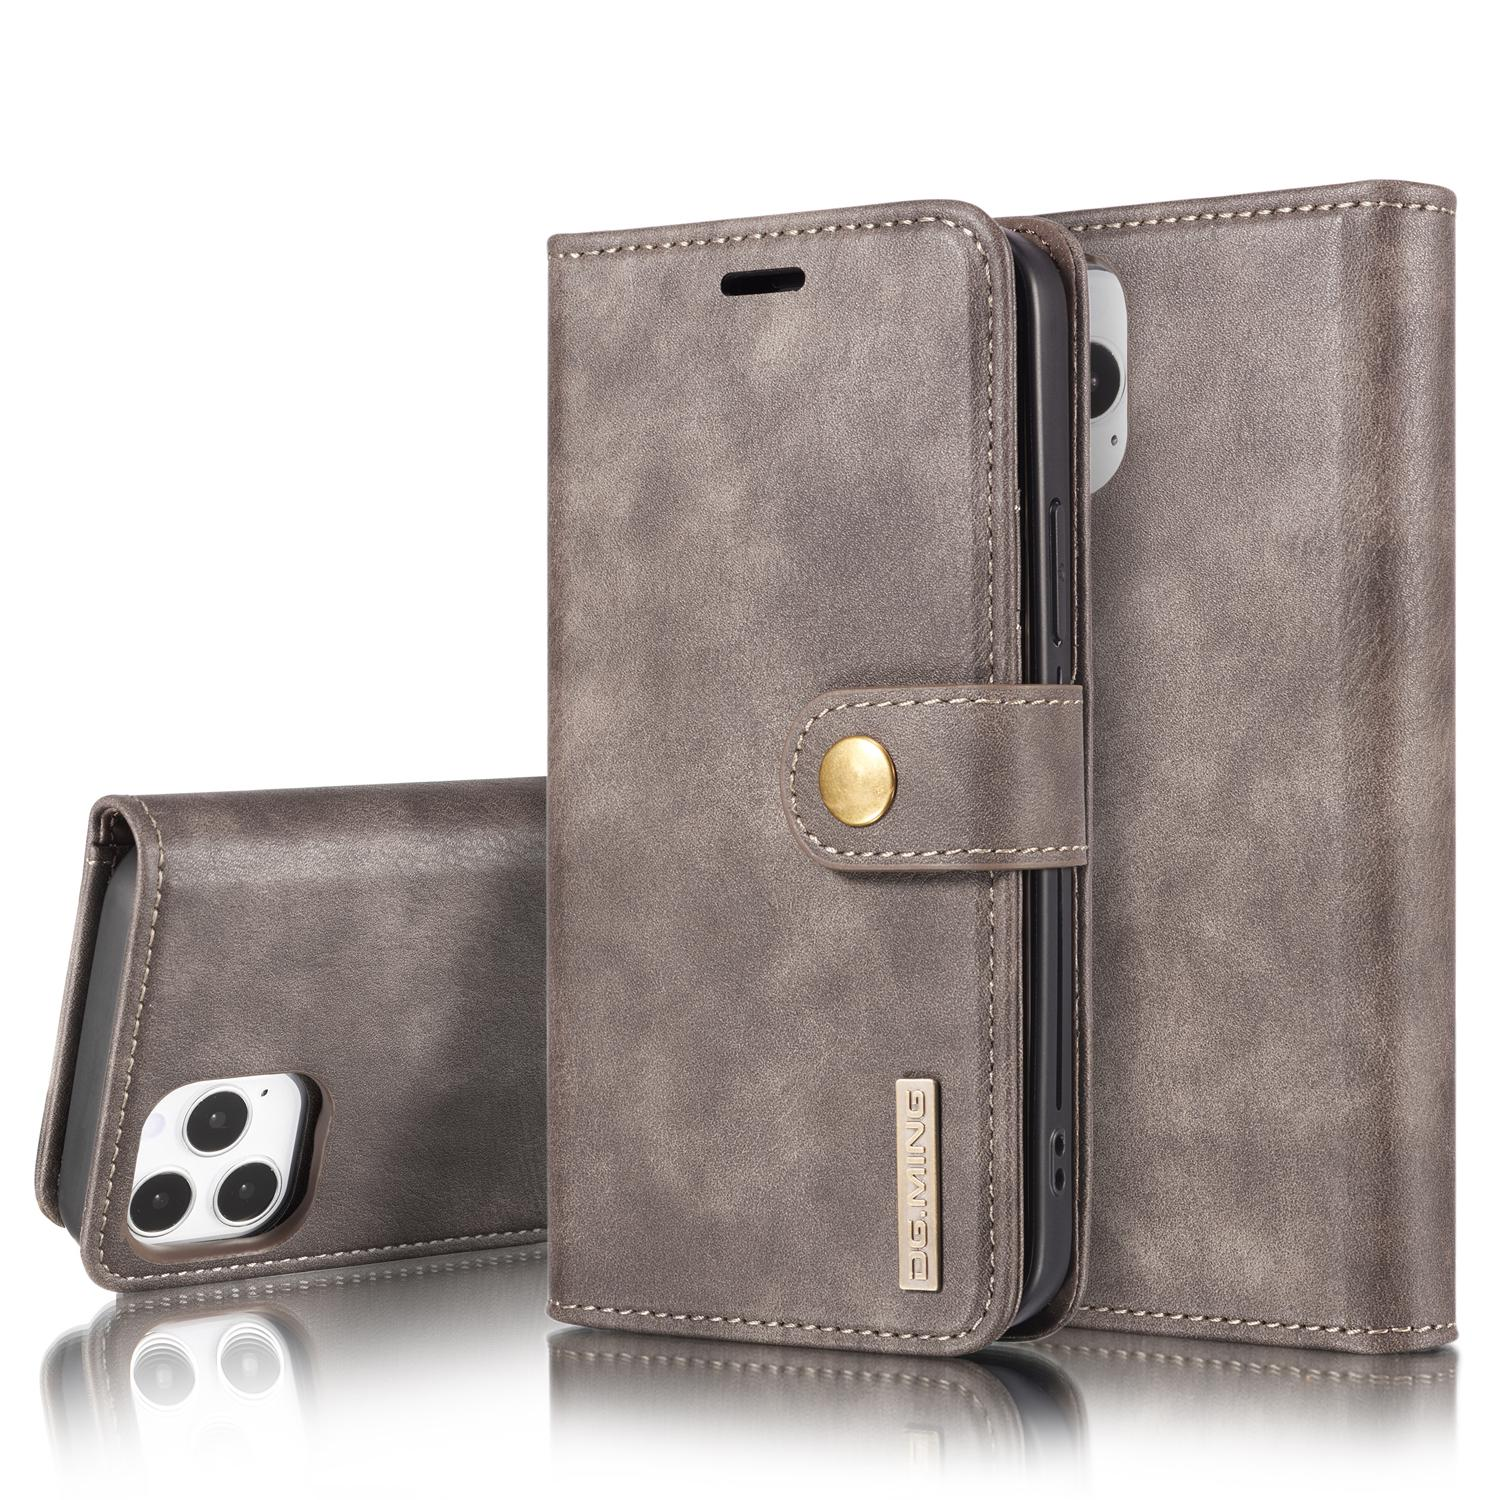 Magnet Wallet iPhone 12 Pro Max Brown